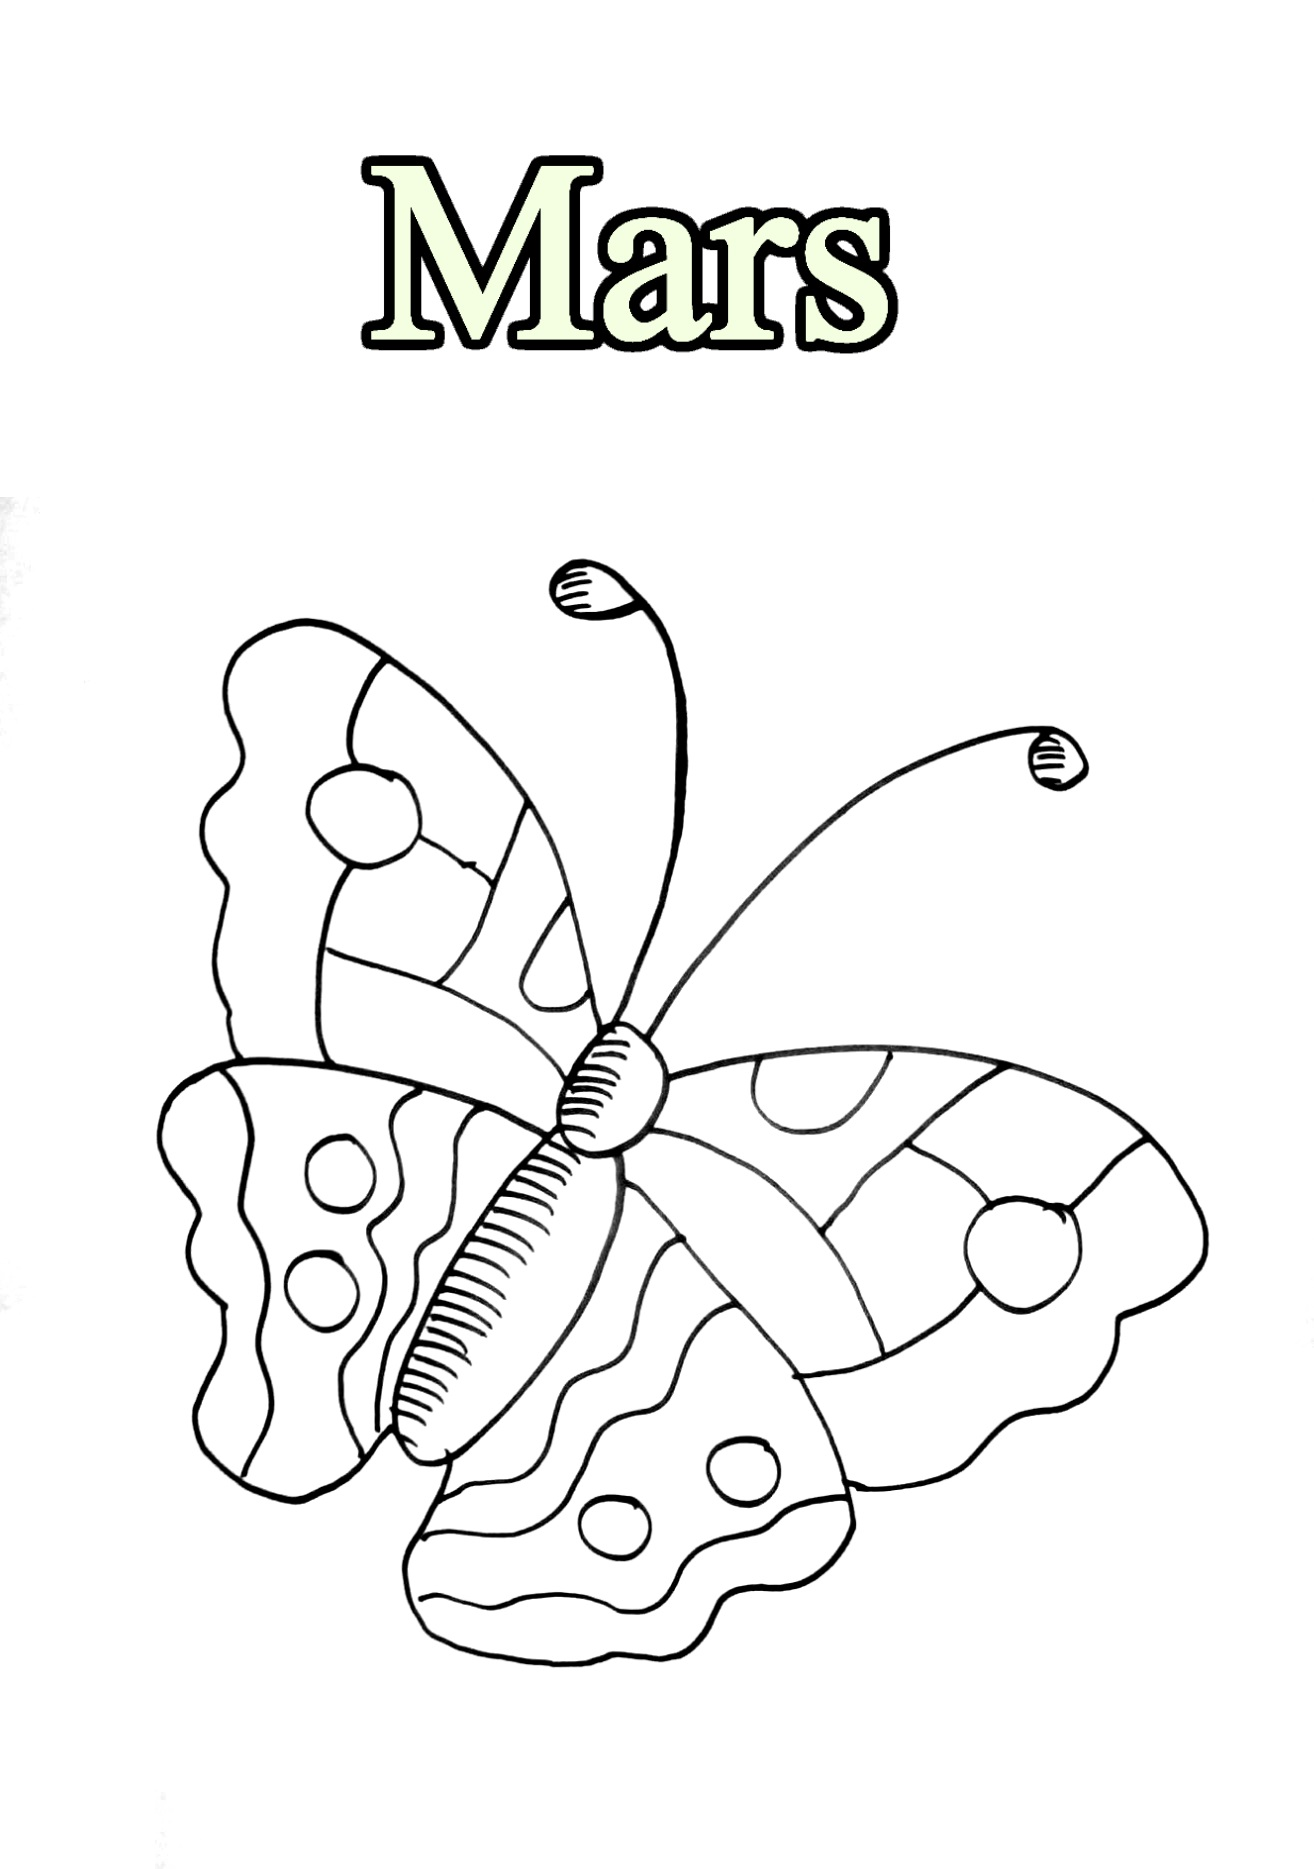 Easy free Month coloring page to download